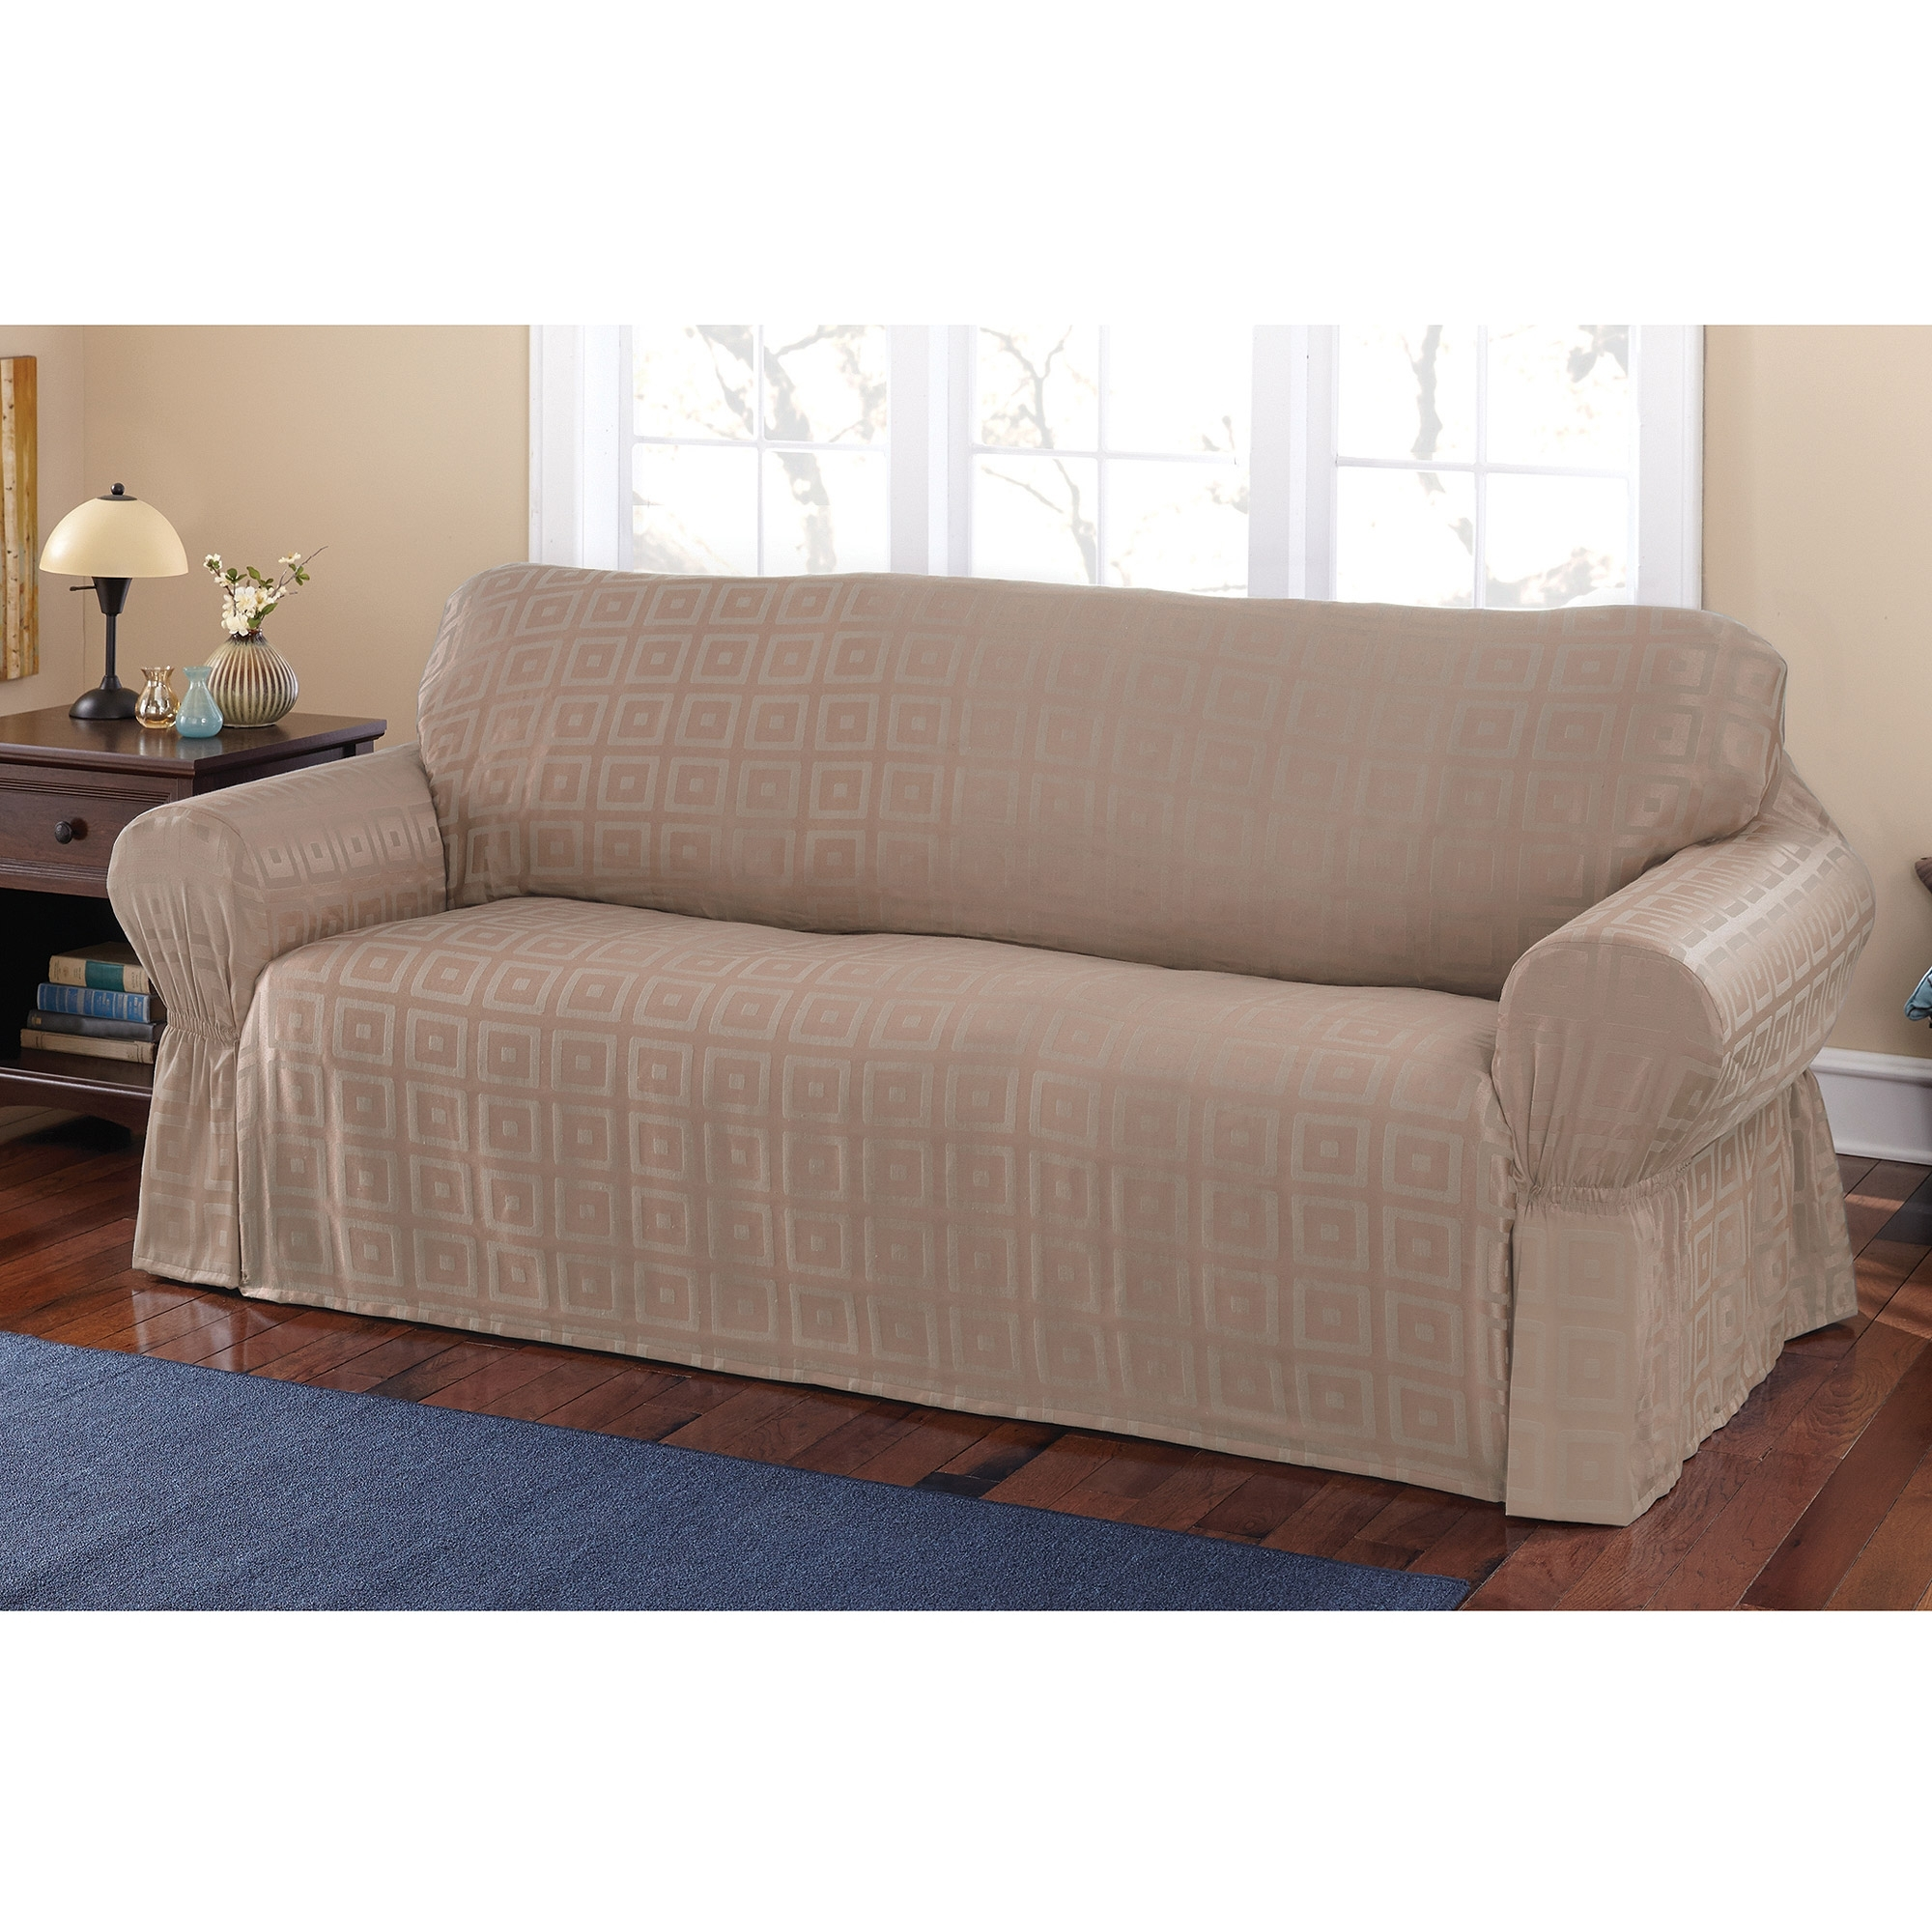 Current Slipcovers Sofas Within Mainstays Sherwood Slipcover Sofa – Walmart (View 3 of 15)